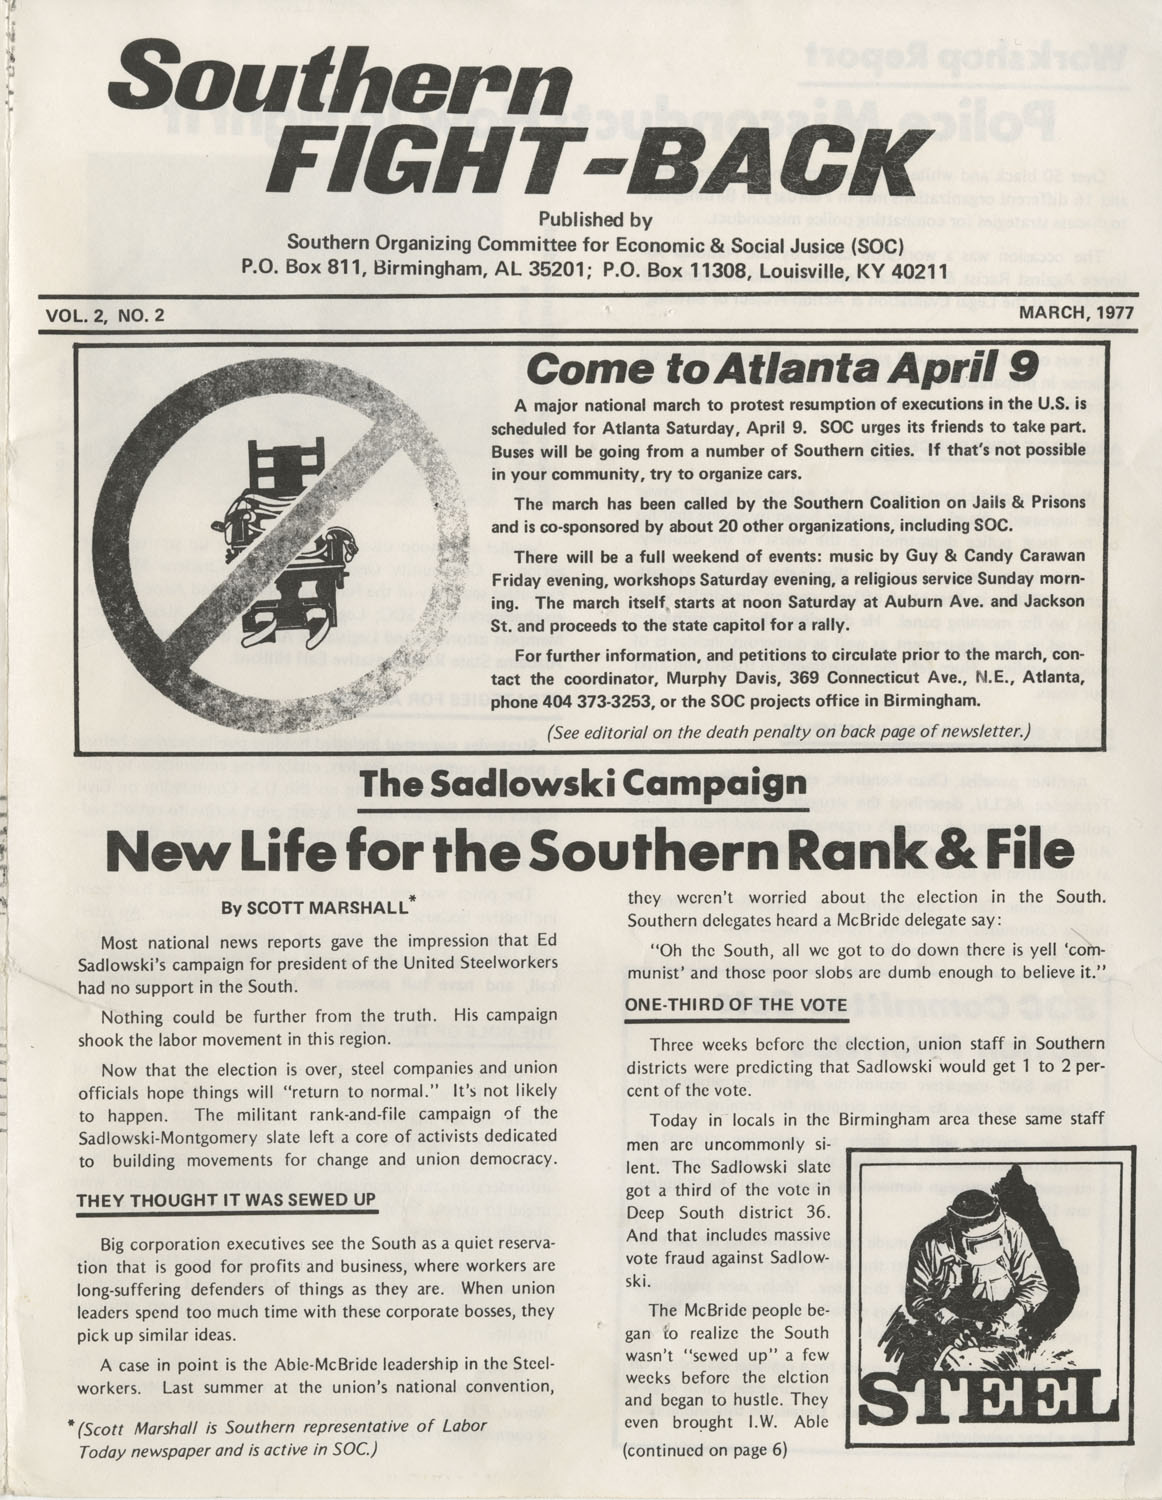 Southern Fight-Back, Southern Organizing Committee for Economic and Social Justice, March 1977